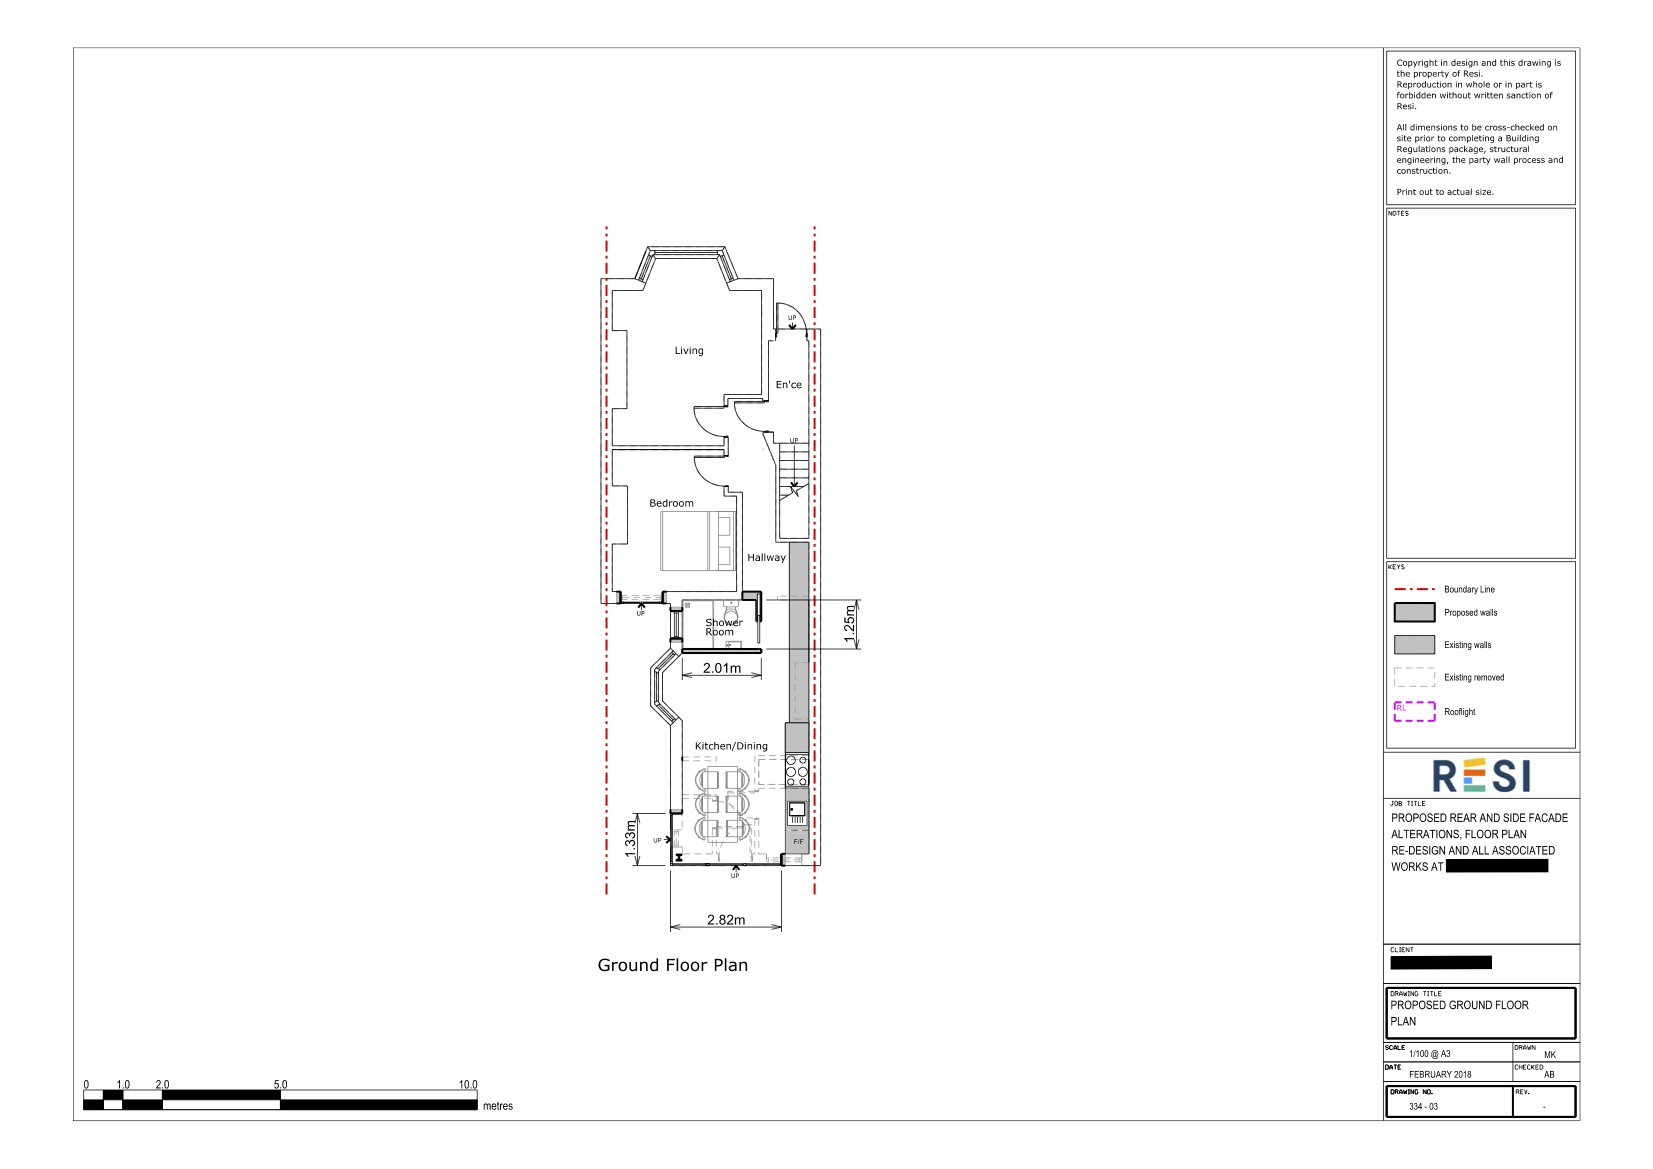 Architectural drawings   ground floor plan